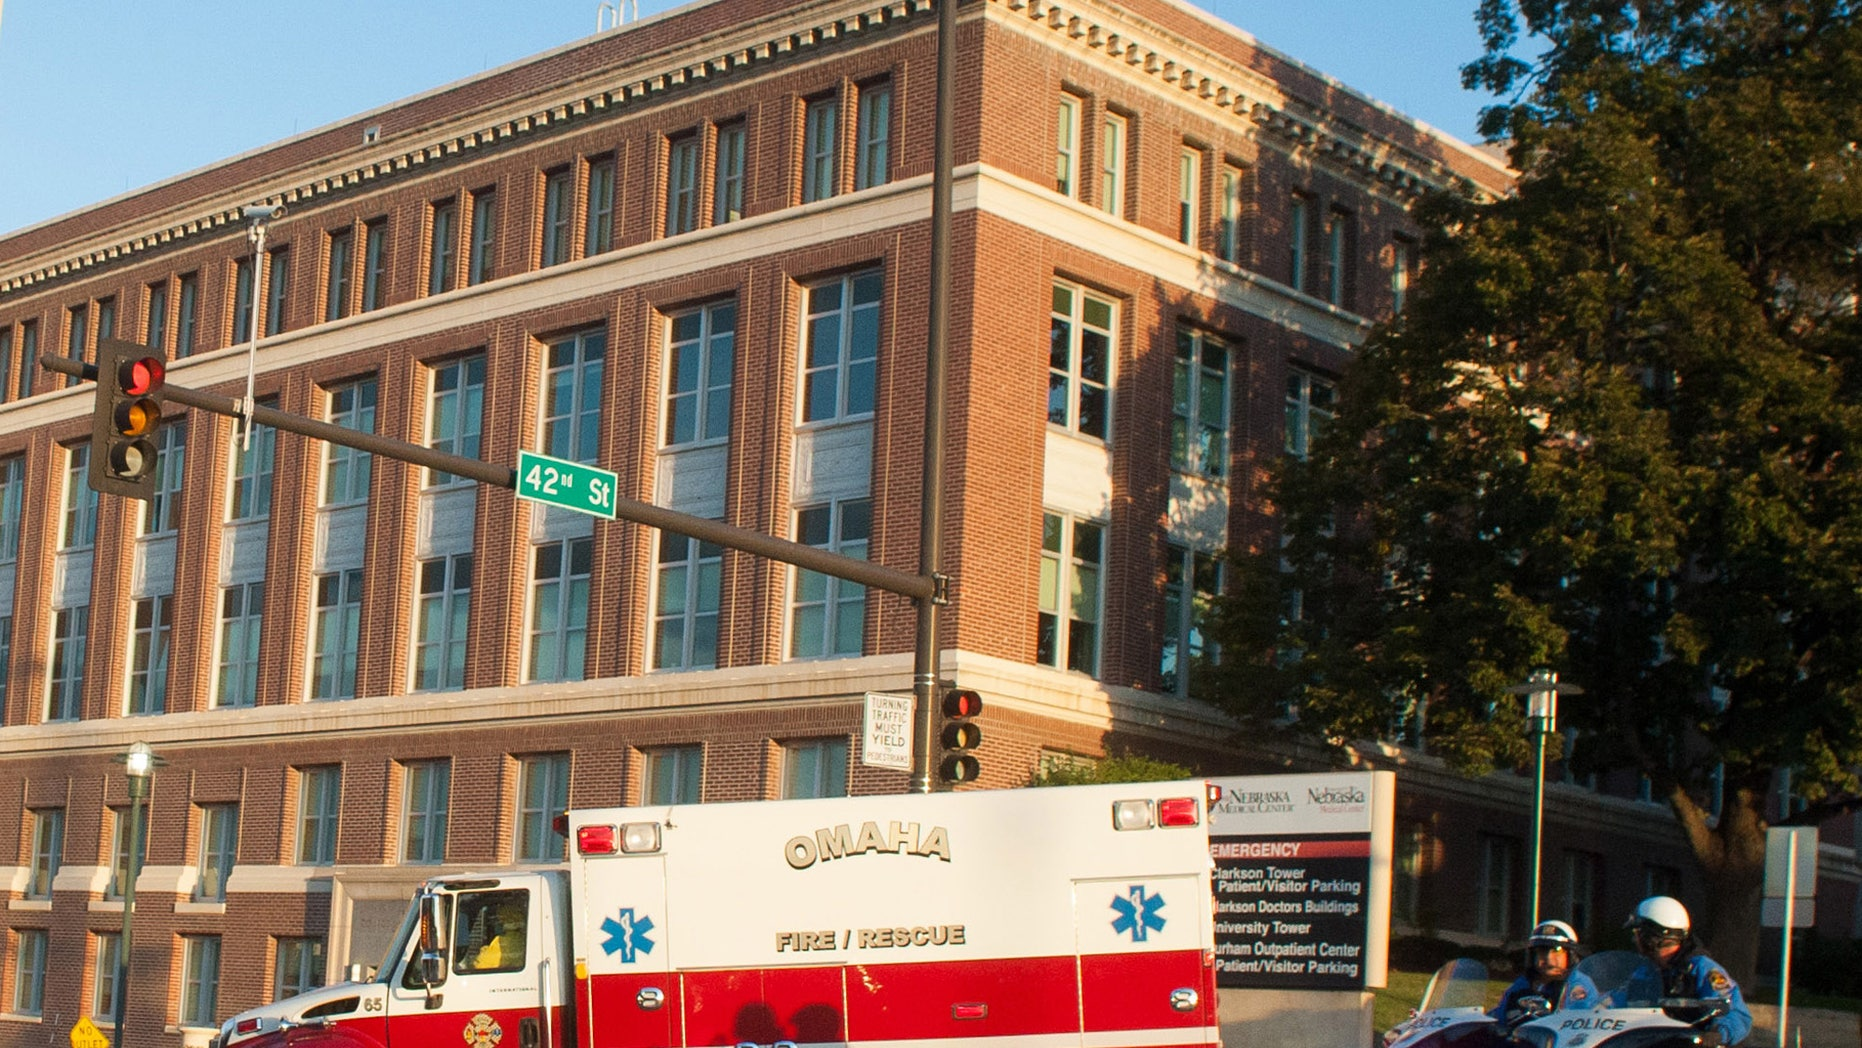 An ambulance transports Ashoka Mukpo, who contracted Ebola while working in Liberia, to the Nebraska Medical Center's specialized isolation unit Monday, Oct. 6, 2014, in Omaha, Neb., where he will be treated for the deadly disease. (AP Photo/Dave Weaver)